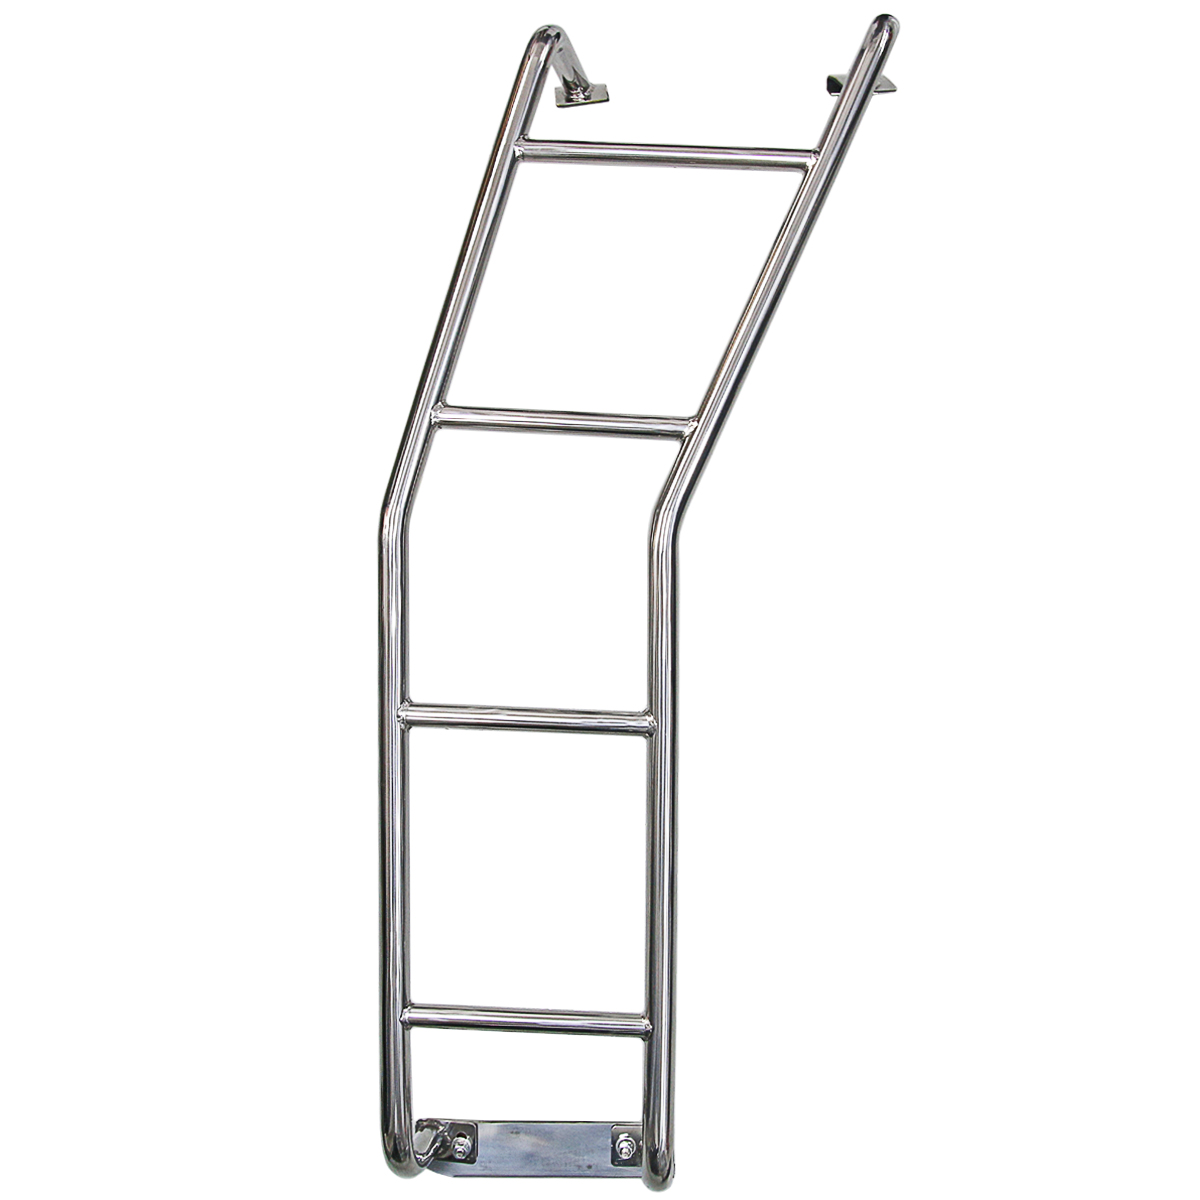 NEW!! Rear Stainless Steel Roof Ladder For Daihatsu Terios